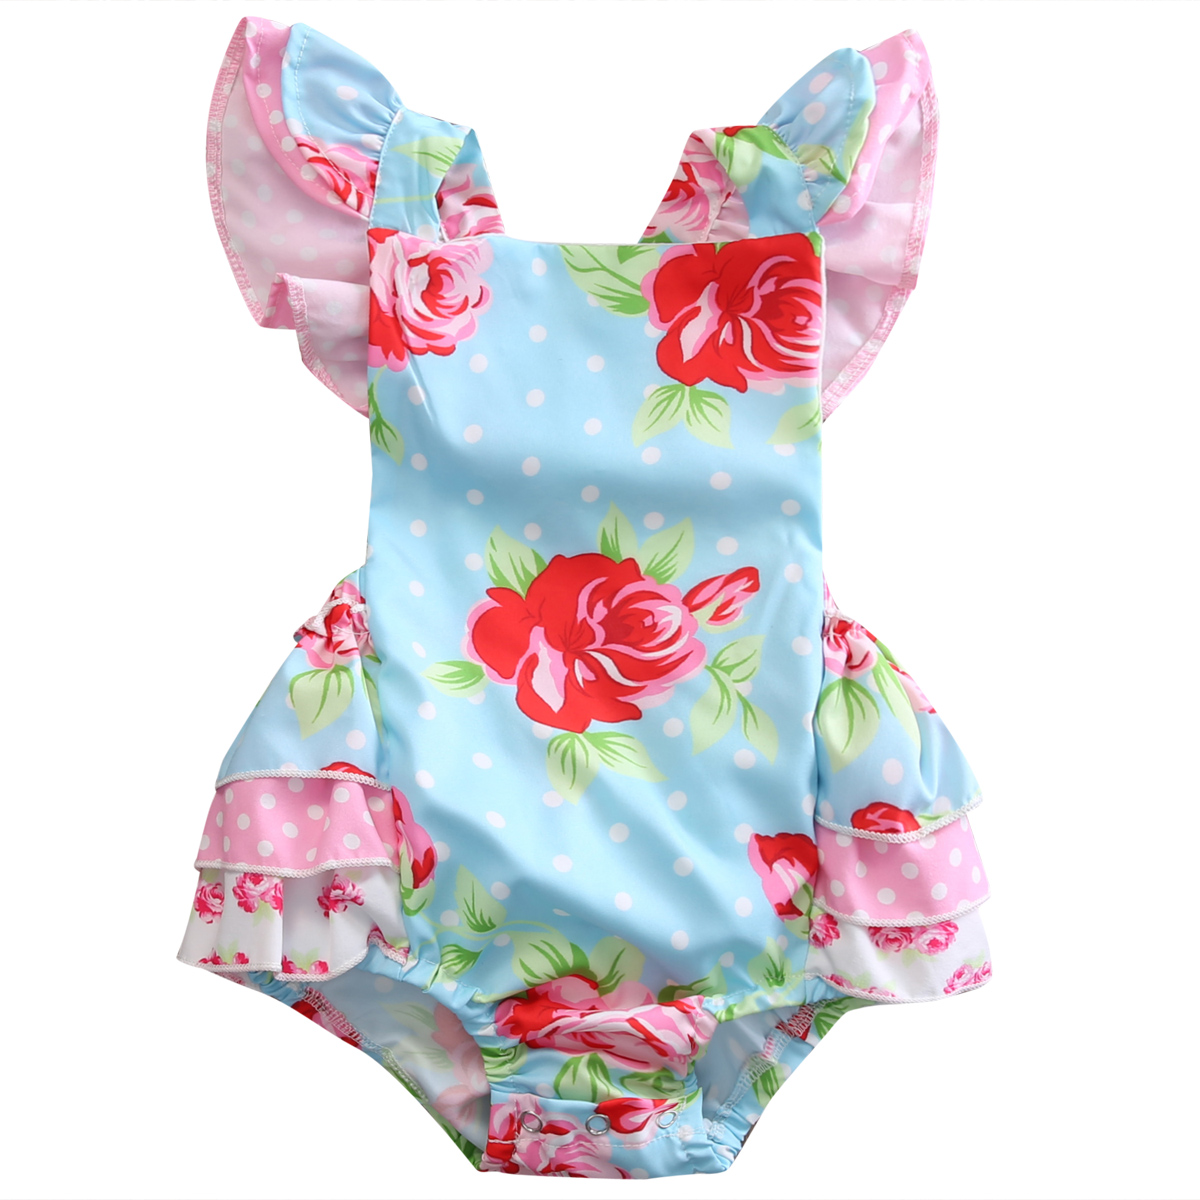 Cute Newborn Infant Baby Girl Floral Ruffle Bodysuit Jumper Jumpsuit Kids Girls Cotton Summer Clothes 0-24M